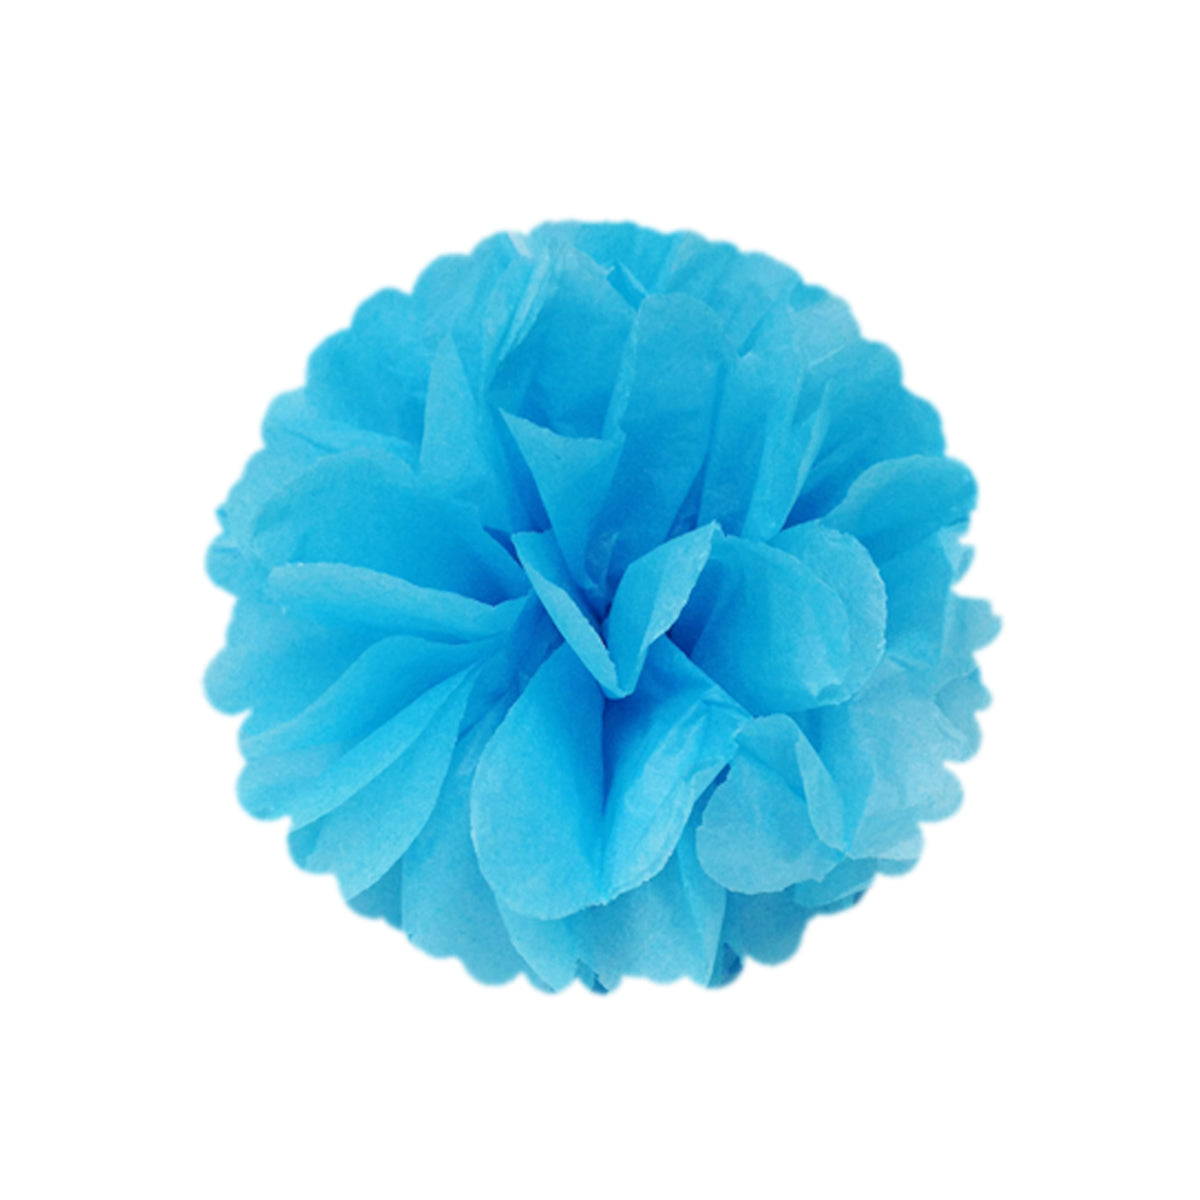 Wrapables Set of 12 Tissue Pom Pom Party Decorations